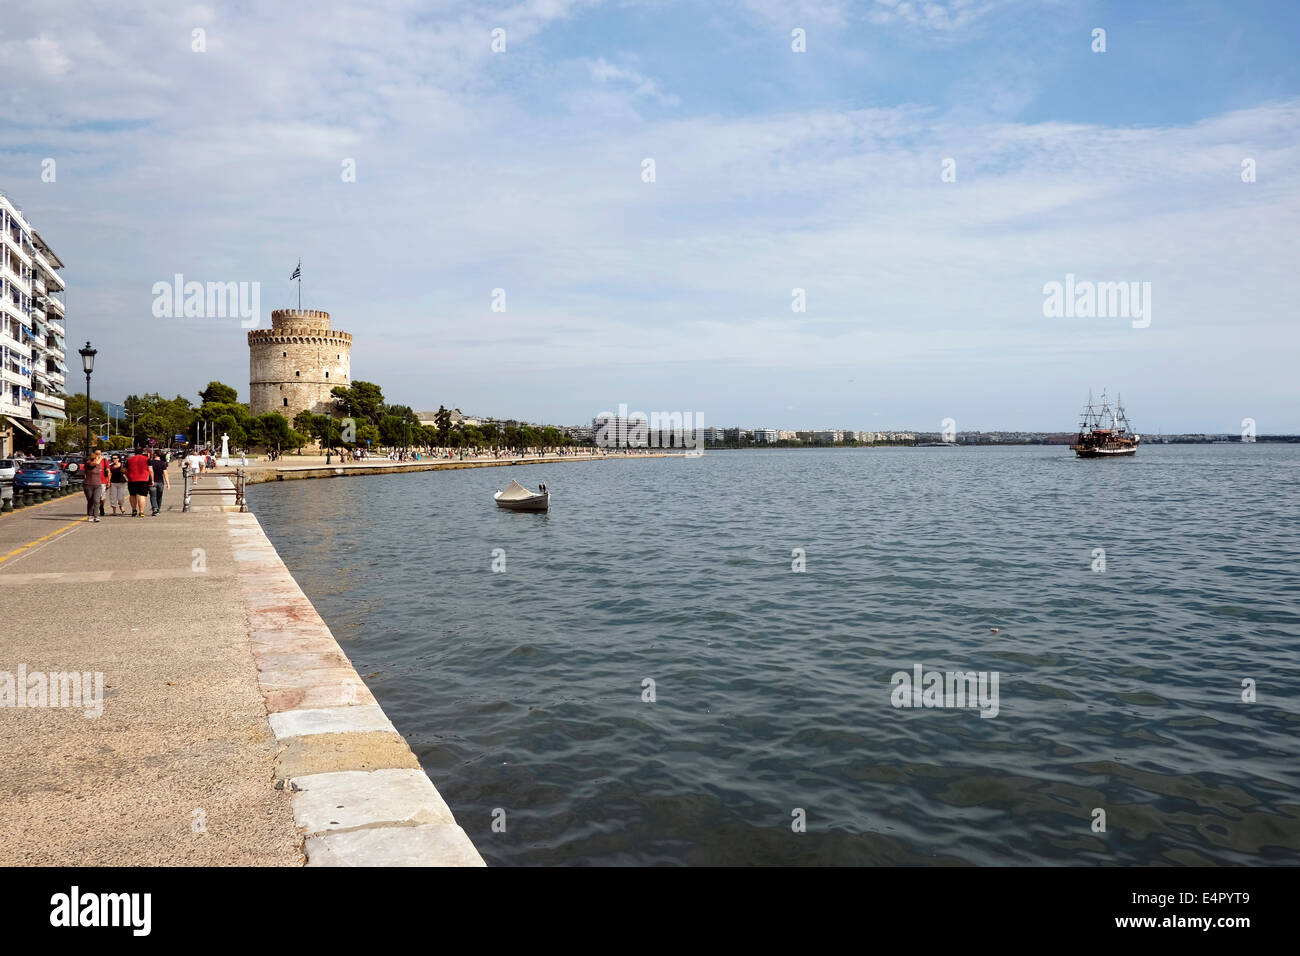 People walks past the city`s landmark, the White Tower in Thessaloniki, Greece. - Stock Image